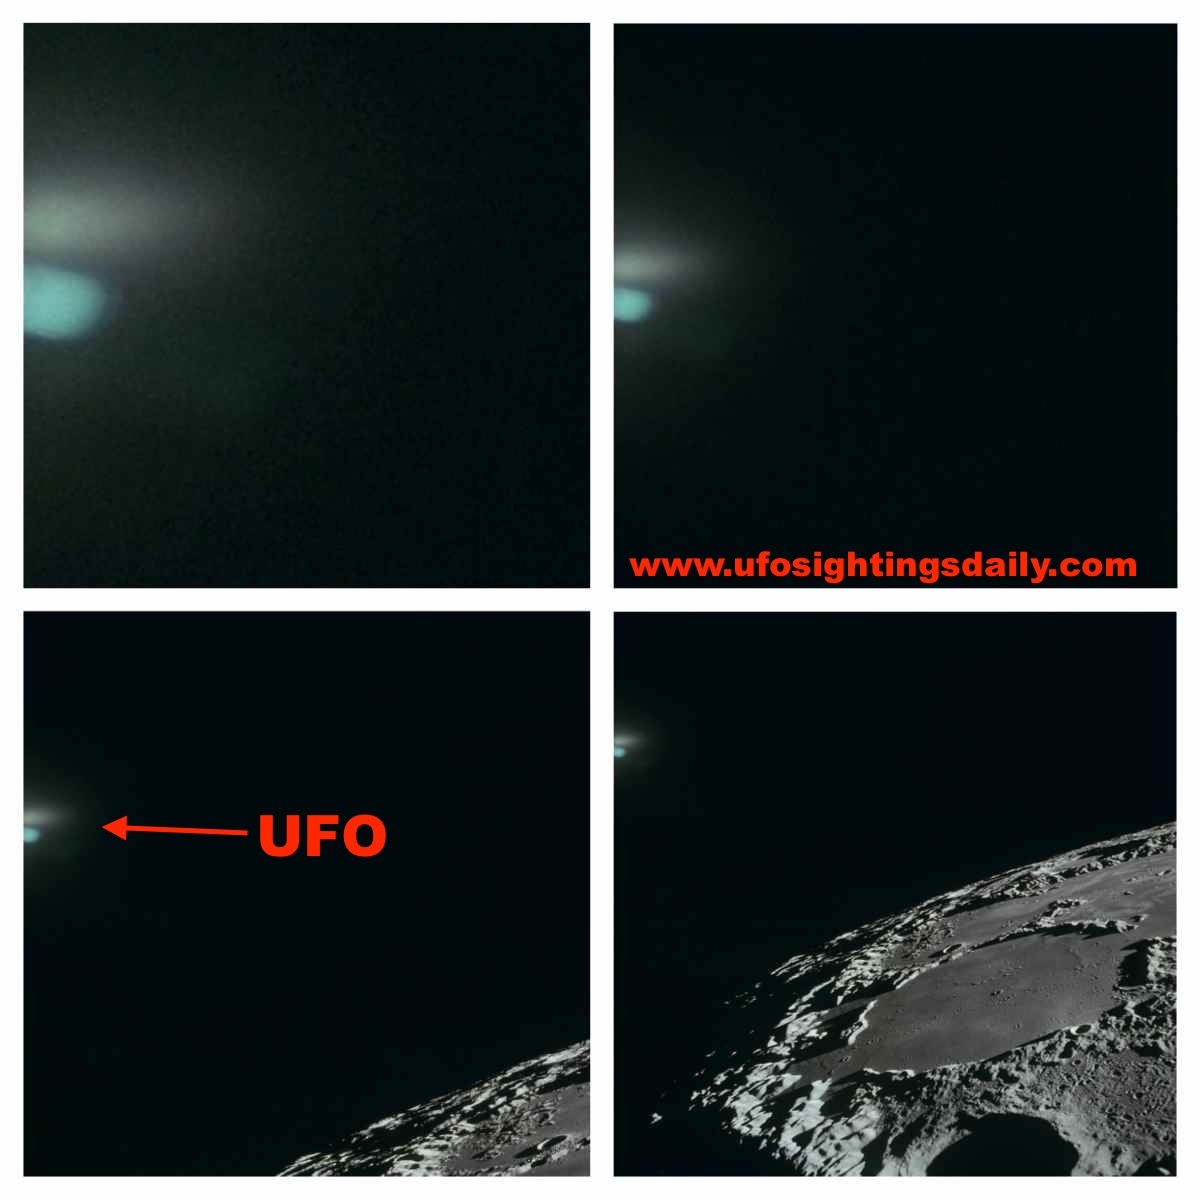 http://2.bp.blogspot.com/-JiEvn90x2Cw/UVPq2IcFCxI/AAAAAAAAPXY/WnN3r5PmQtE/s1600/UFO,+UFOs,+sighting,+sightings,+alien,+aliens,+ET,+Apollo,+mission,+NASA,+top+secret,+news,+MArch,+2013,+Justin+Bieber,+Selena+Gomez,+Angelina+Jolie,+gossip,+baby,+.jpg